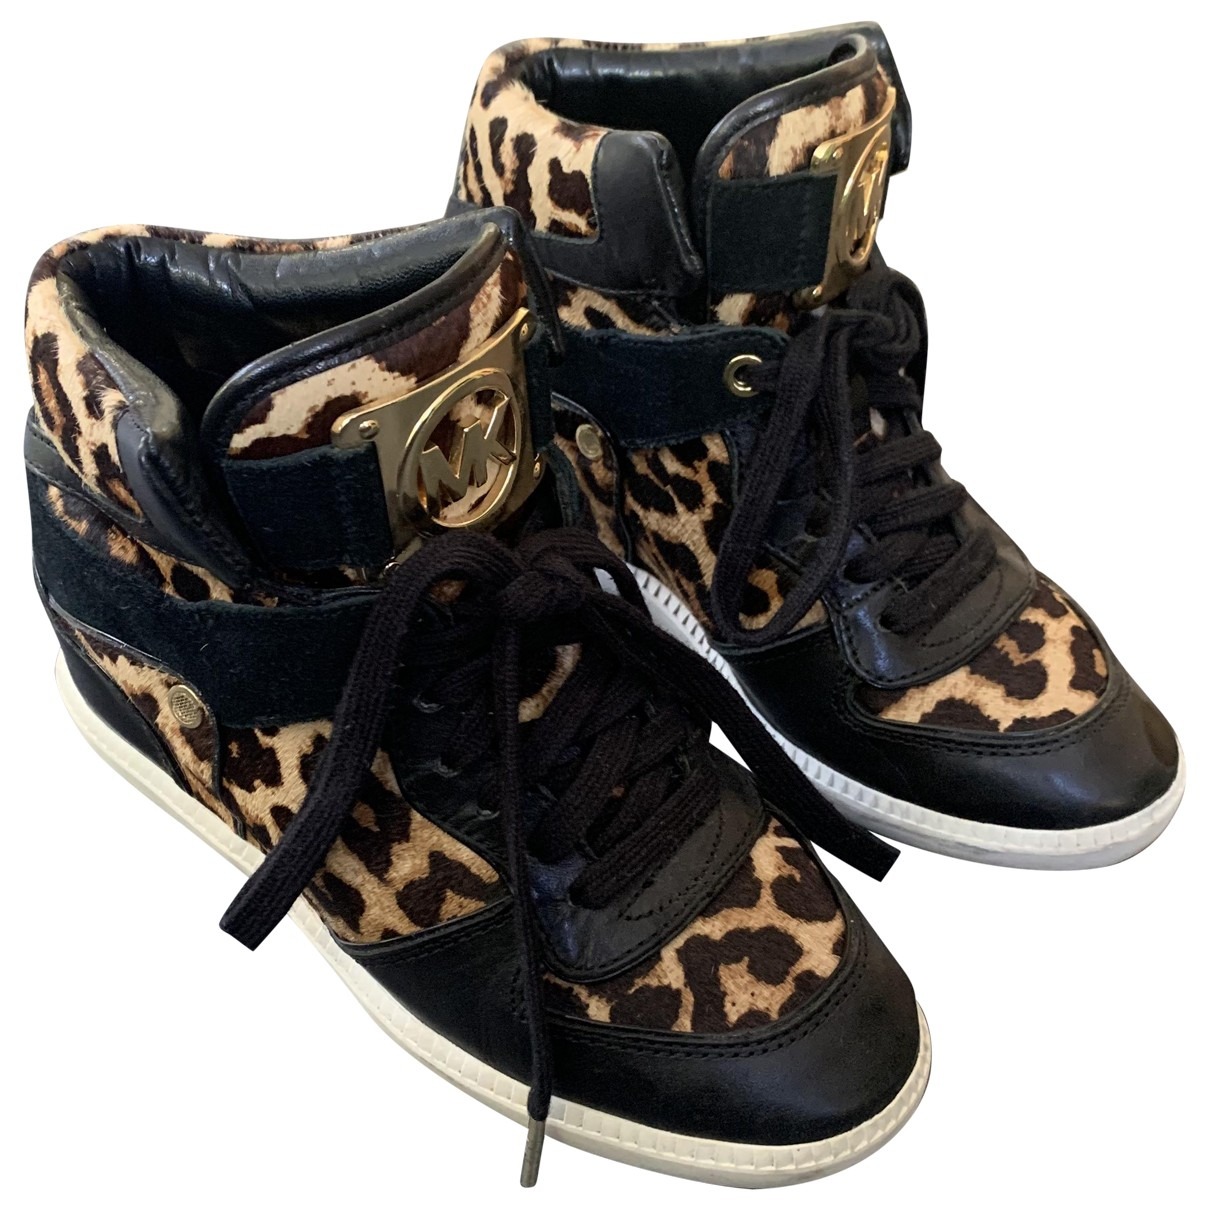 Michael Kors \N Sneakers in  Schwarz Leder